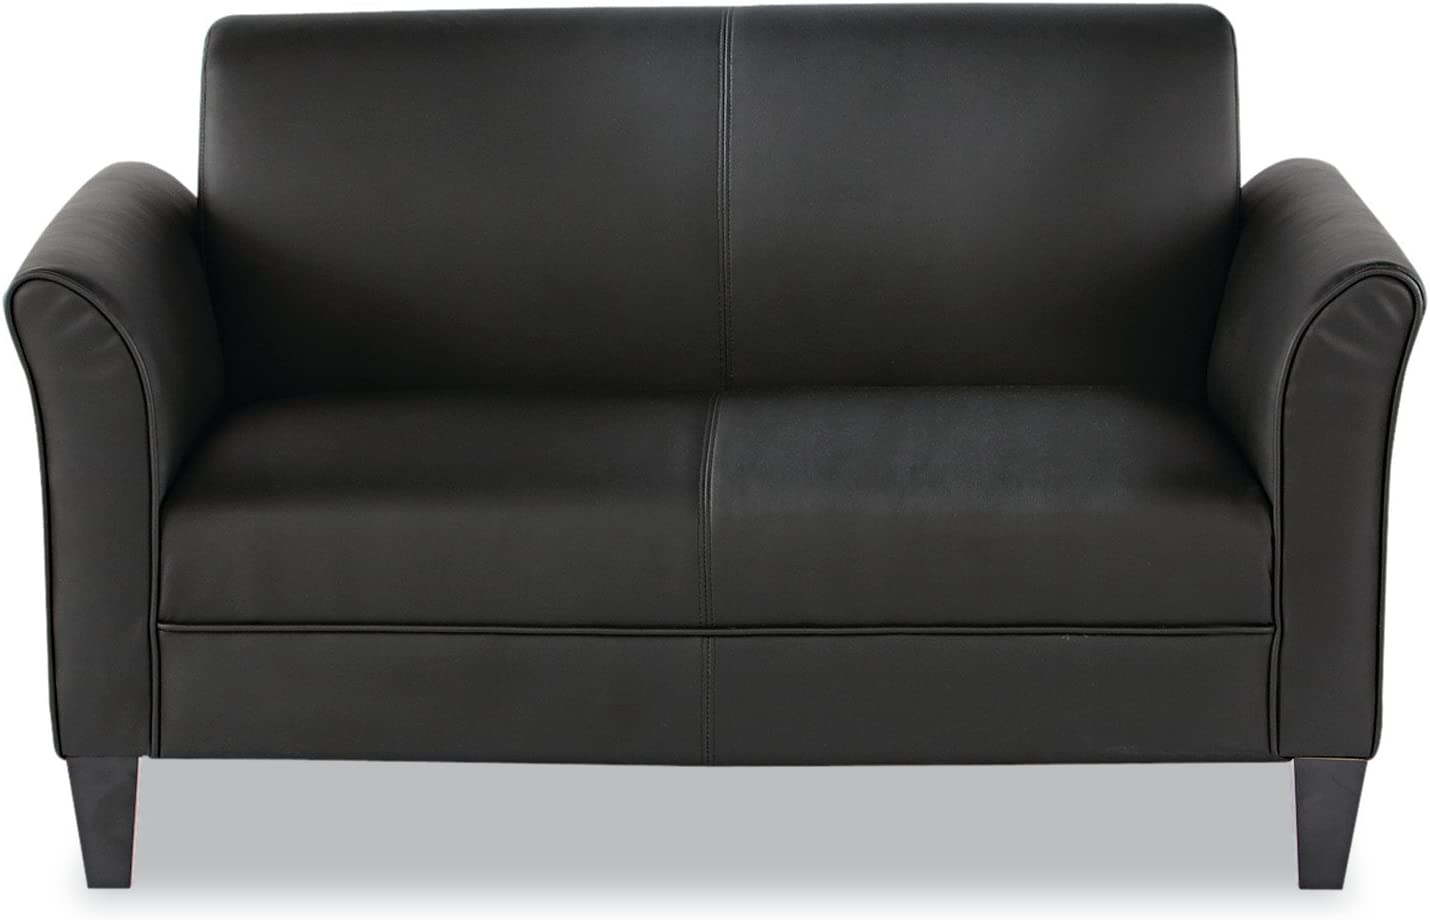 Alera ALE Reception Lounge Furniture, Loveseat, 55-1/2w x 31-1/2d x 32h, Black